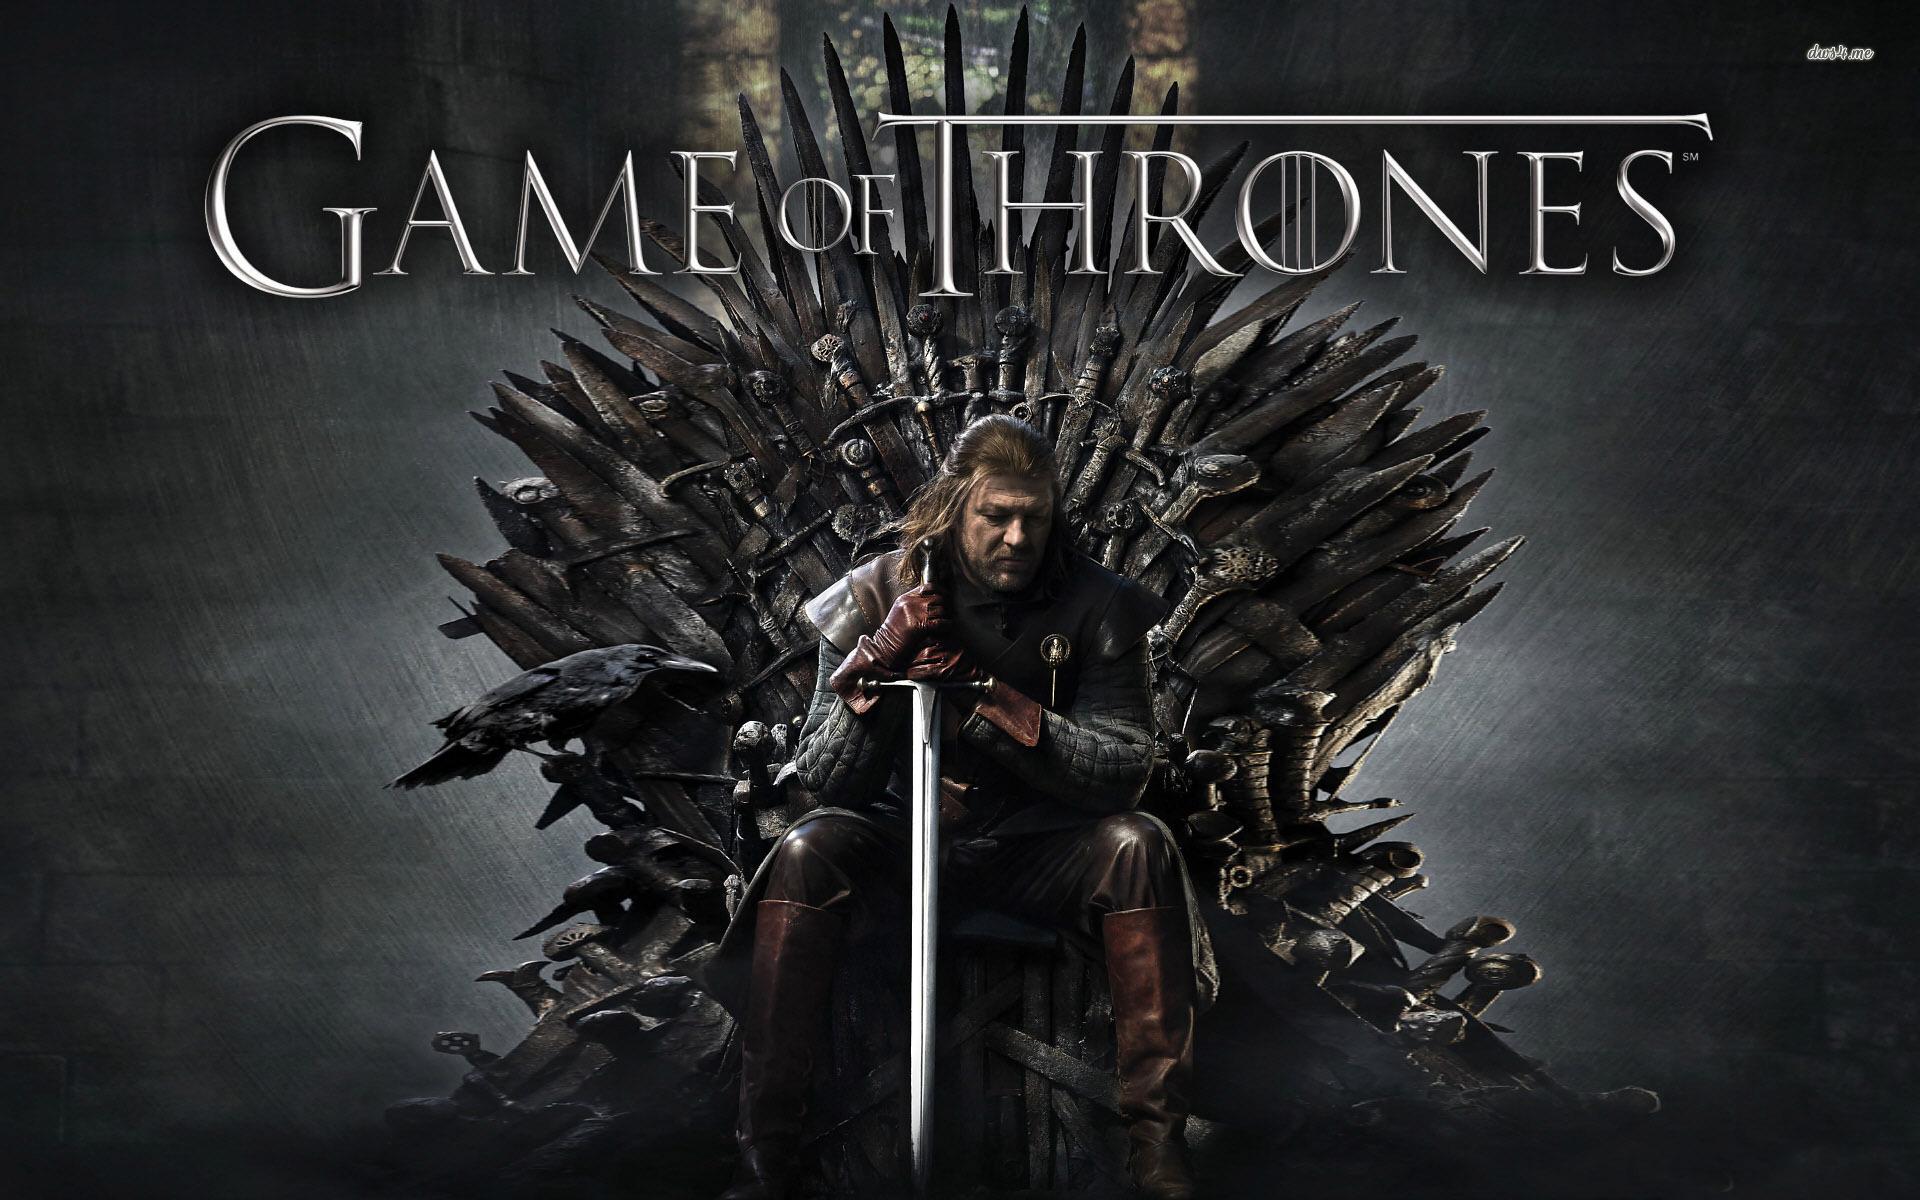 ... game of thrones next season start date 2016 game of thrones new season